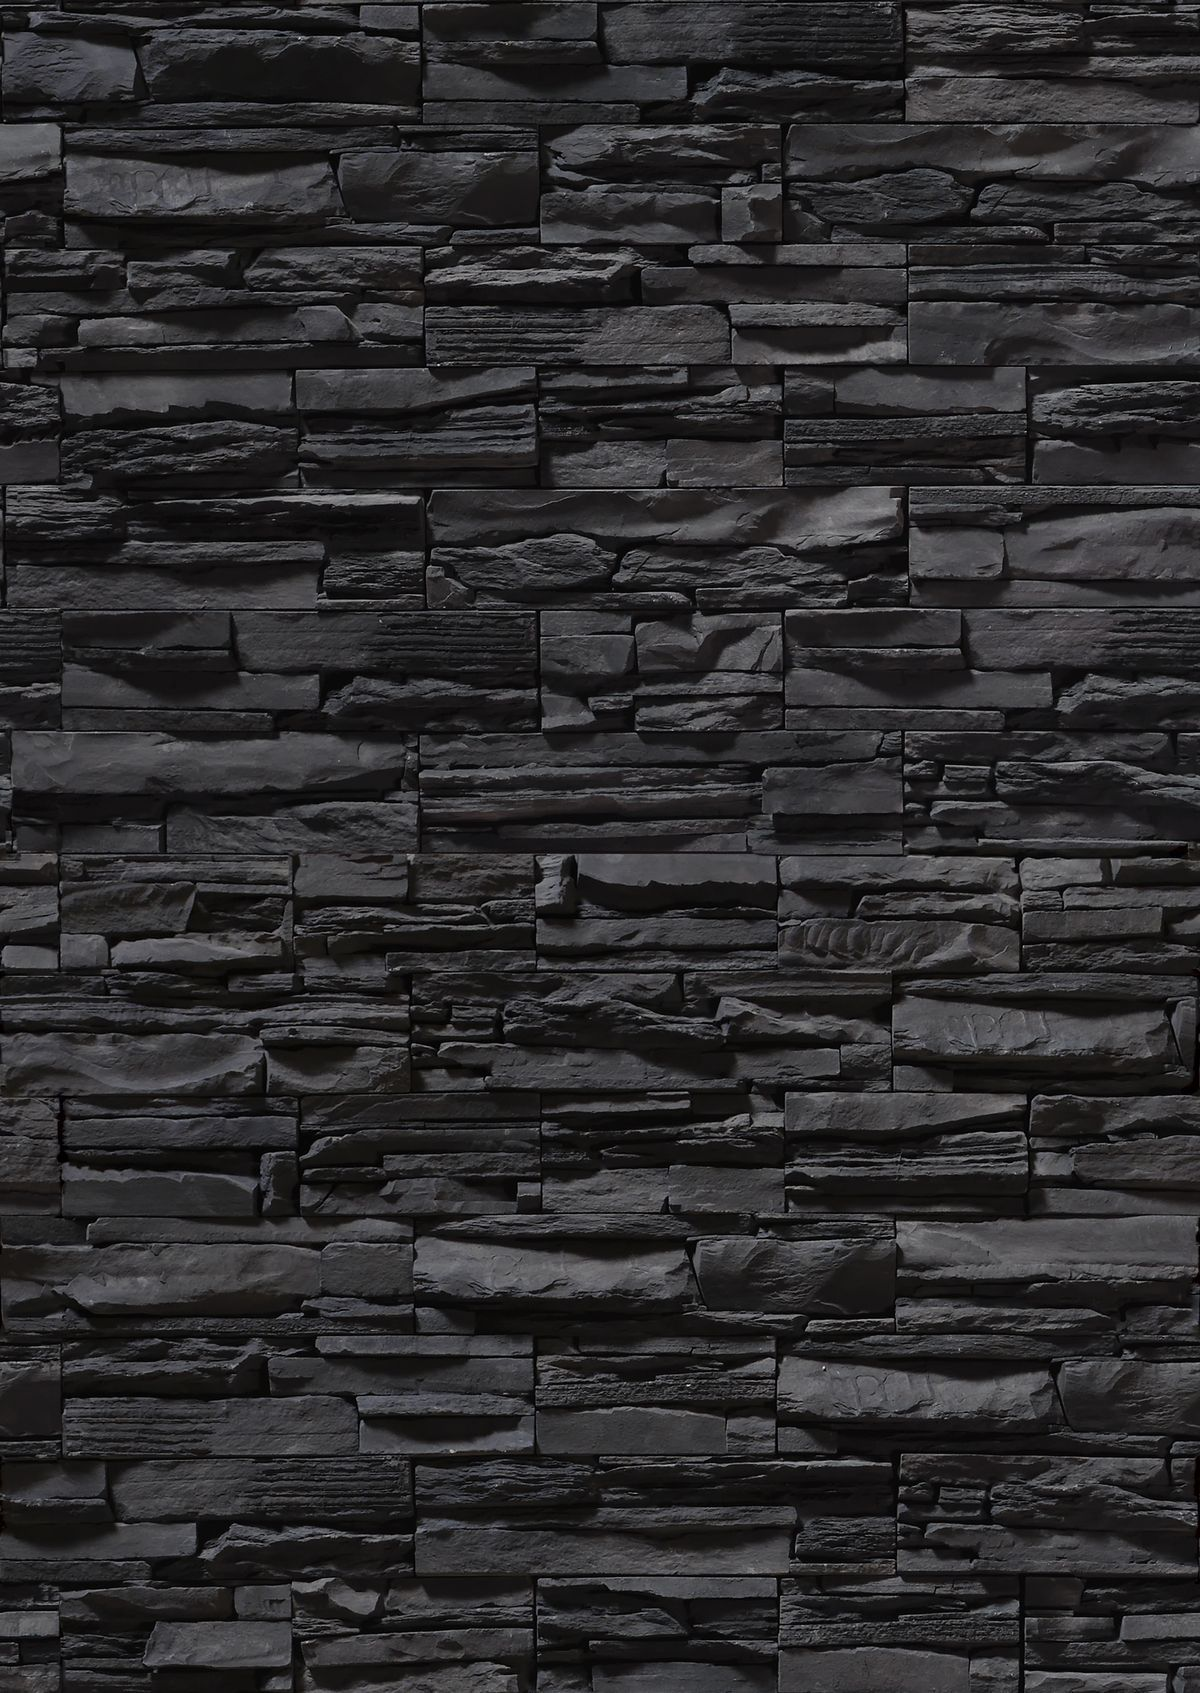 Download Texture Black Stone Wall Texture Stone Stone Wall Download Background Black Stone Background Stone Wallpaper Stone Texture Black Brick